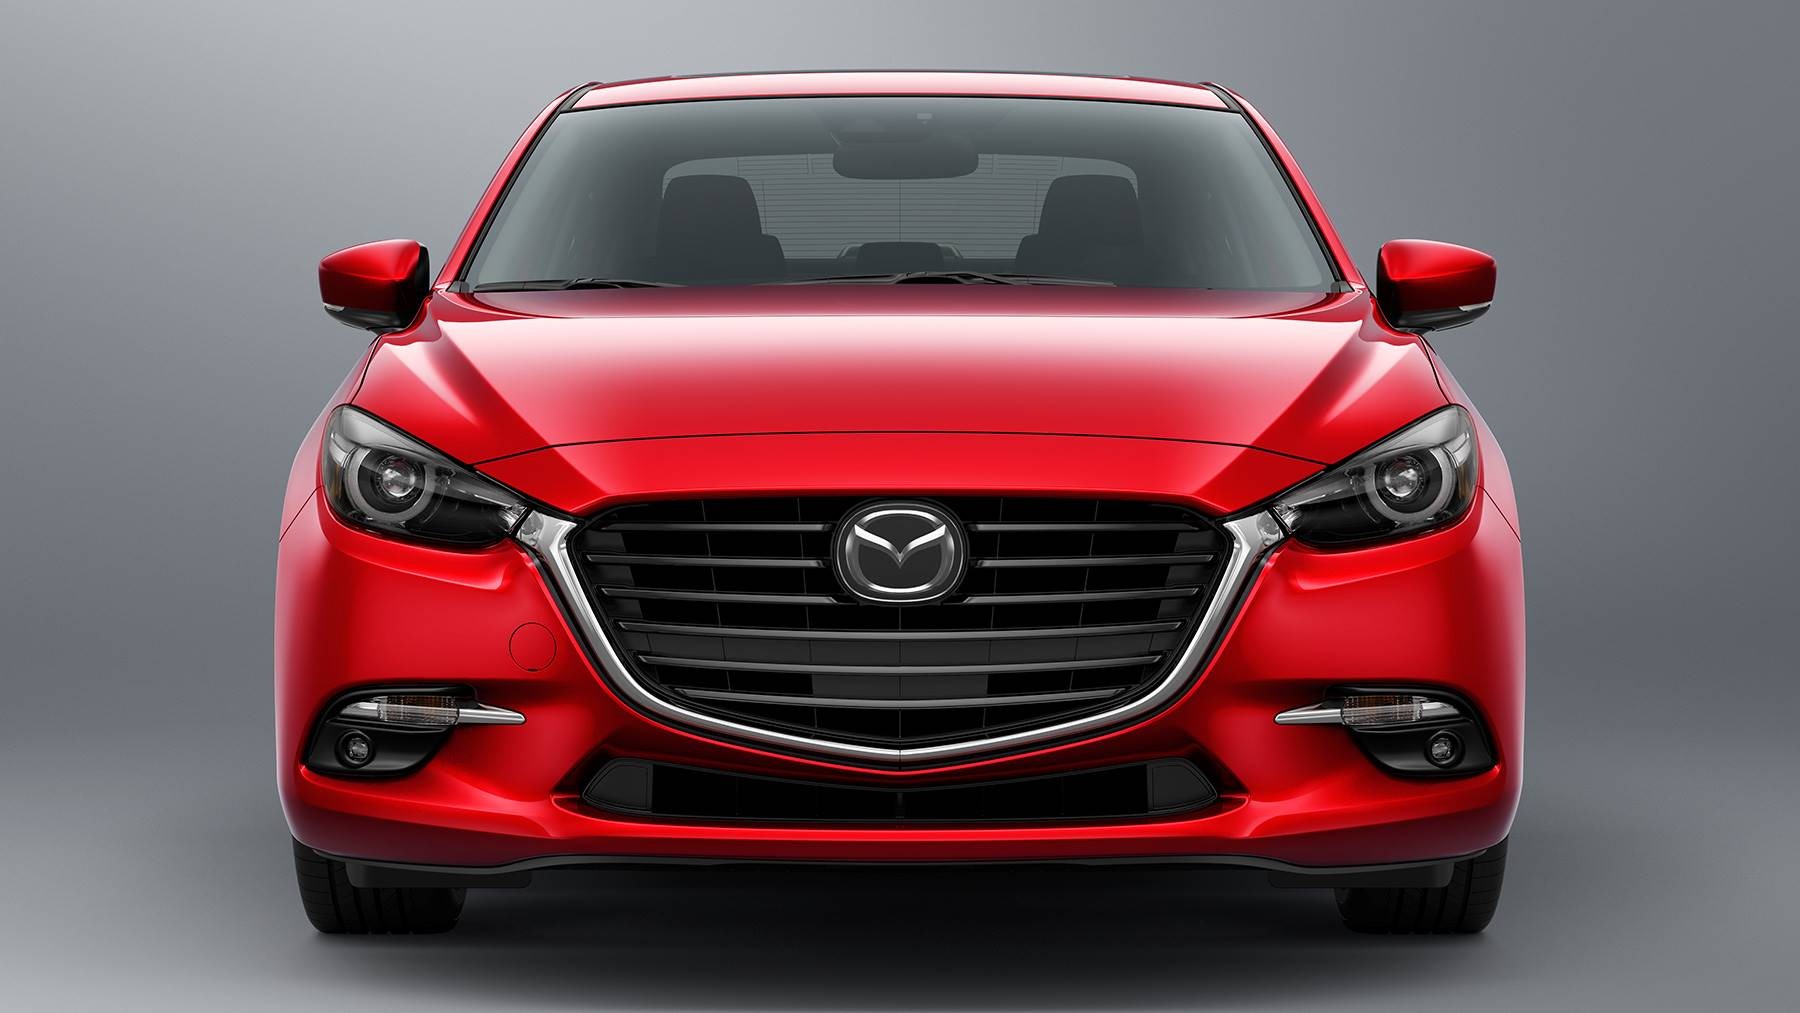 2018 Mazda3 Financing near Flint, MI